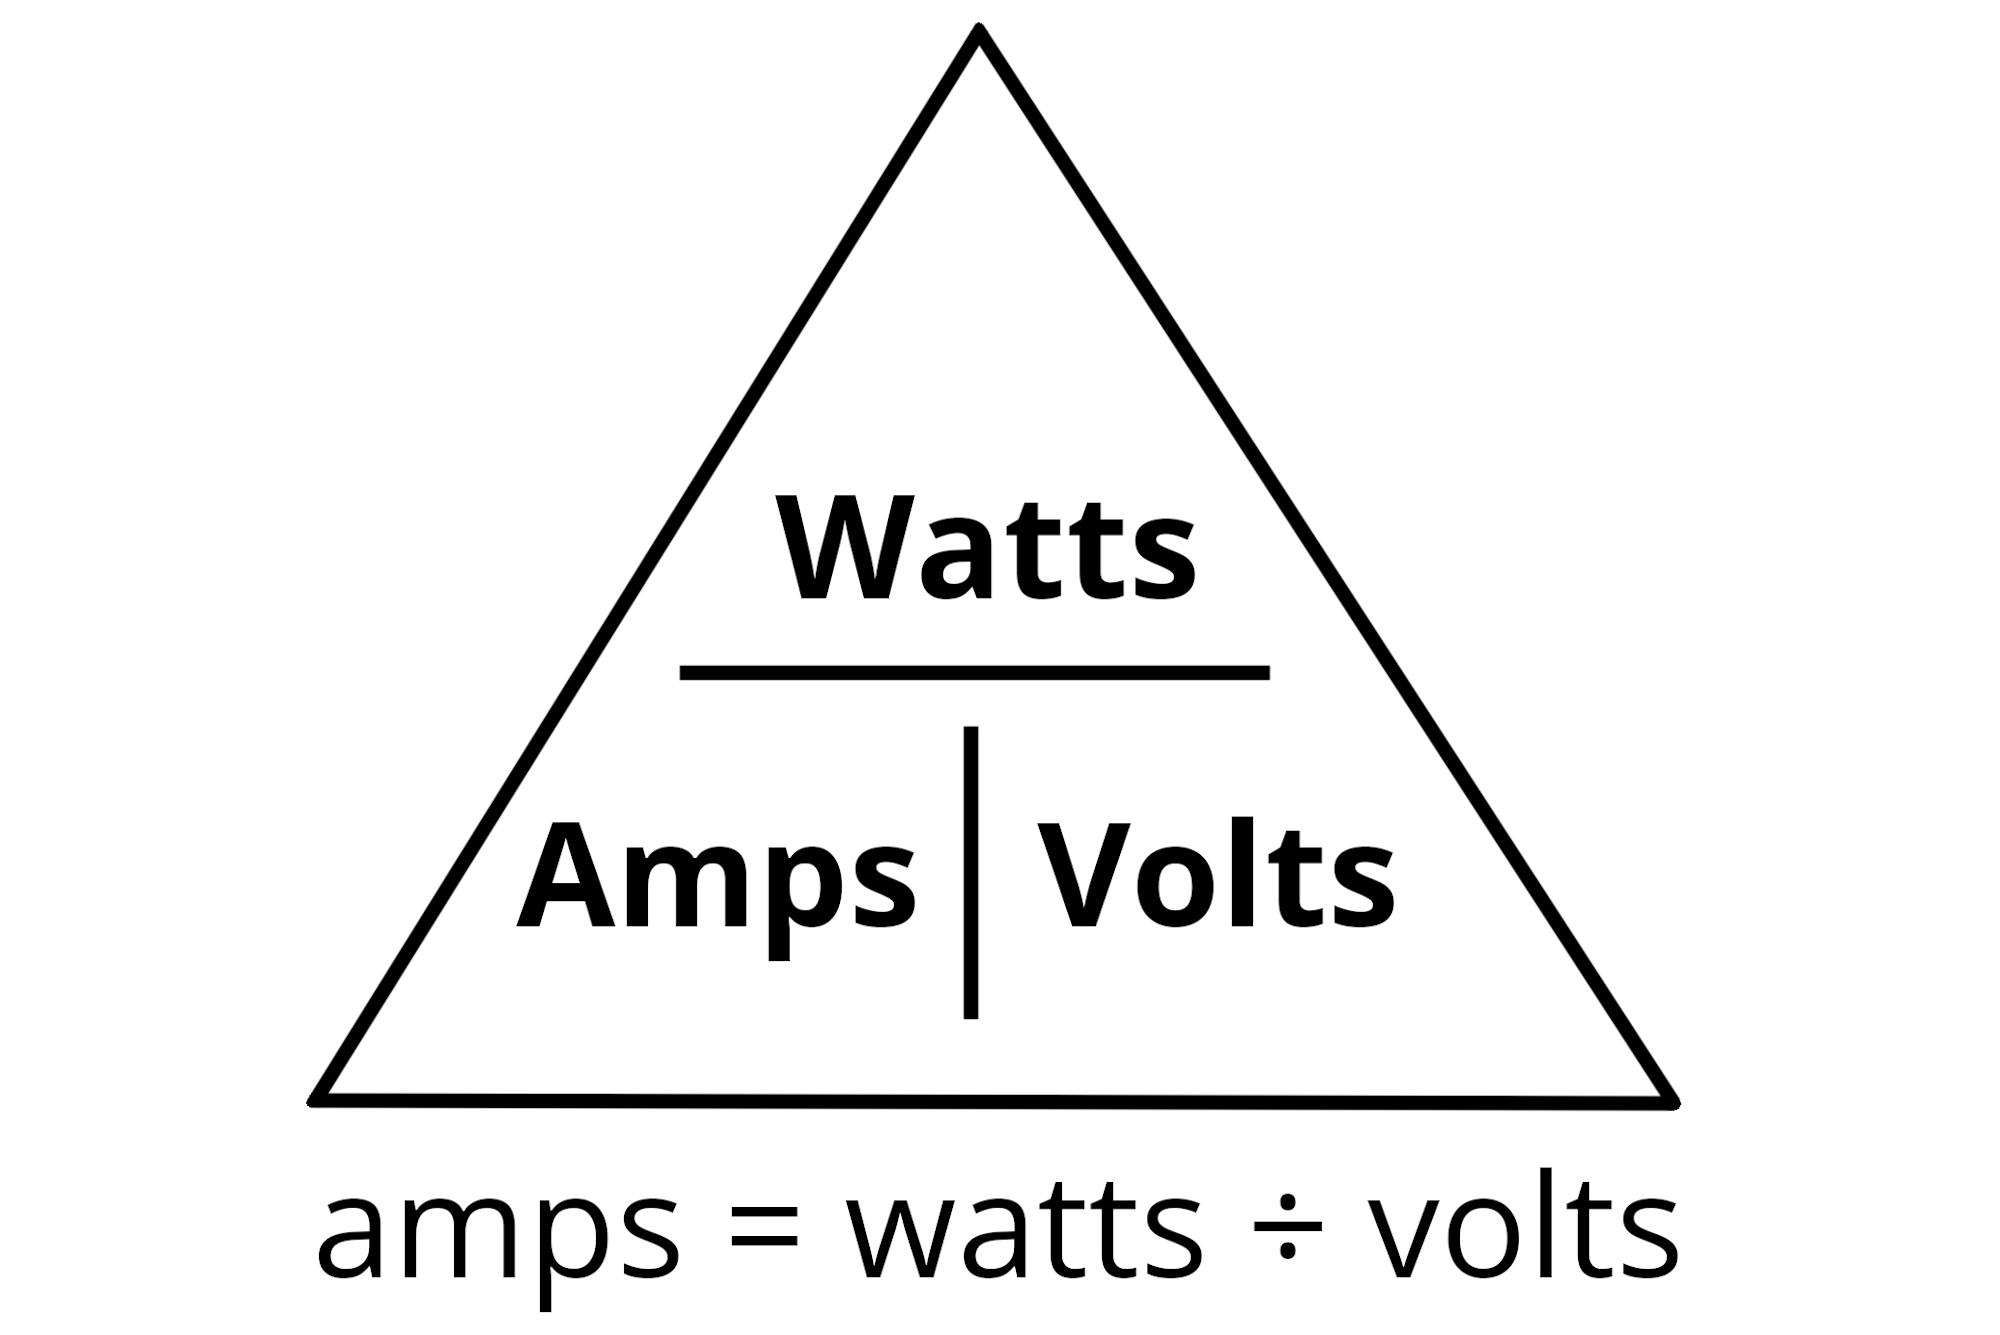 10 amps